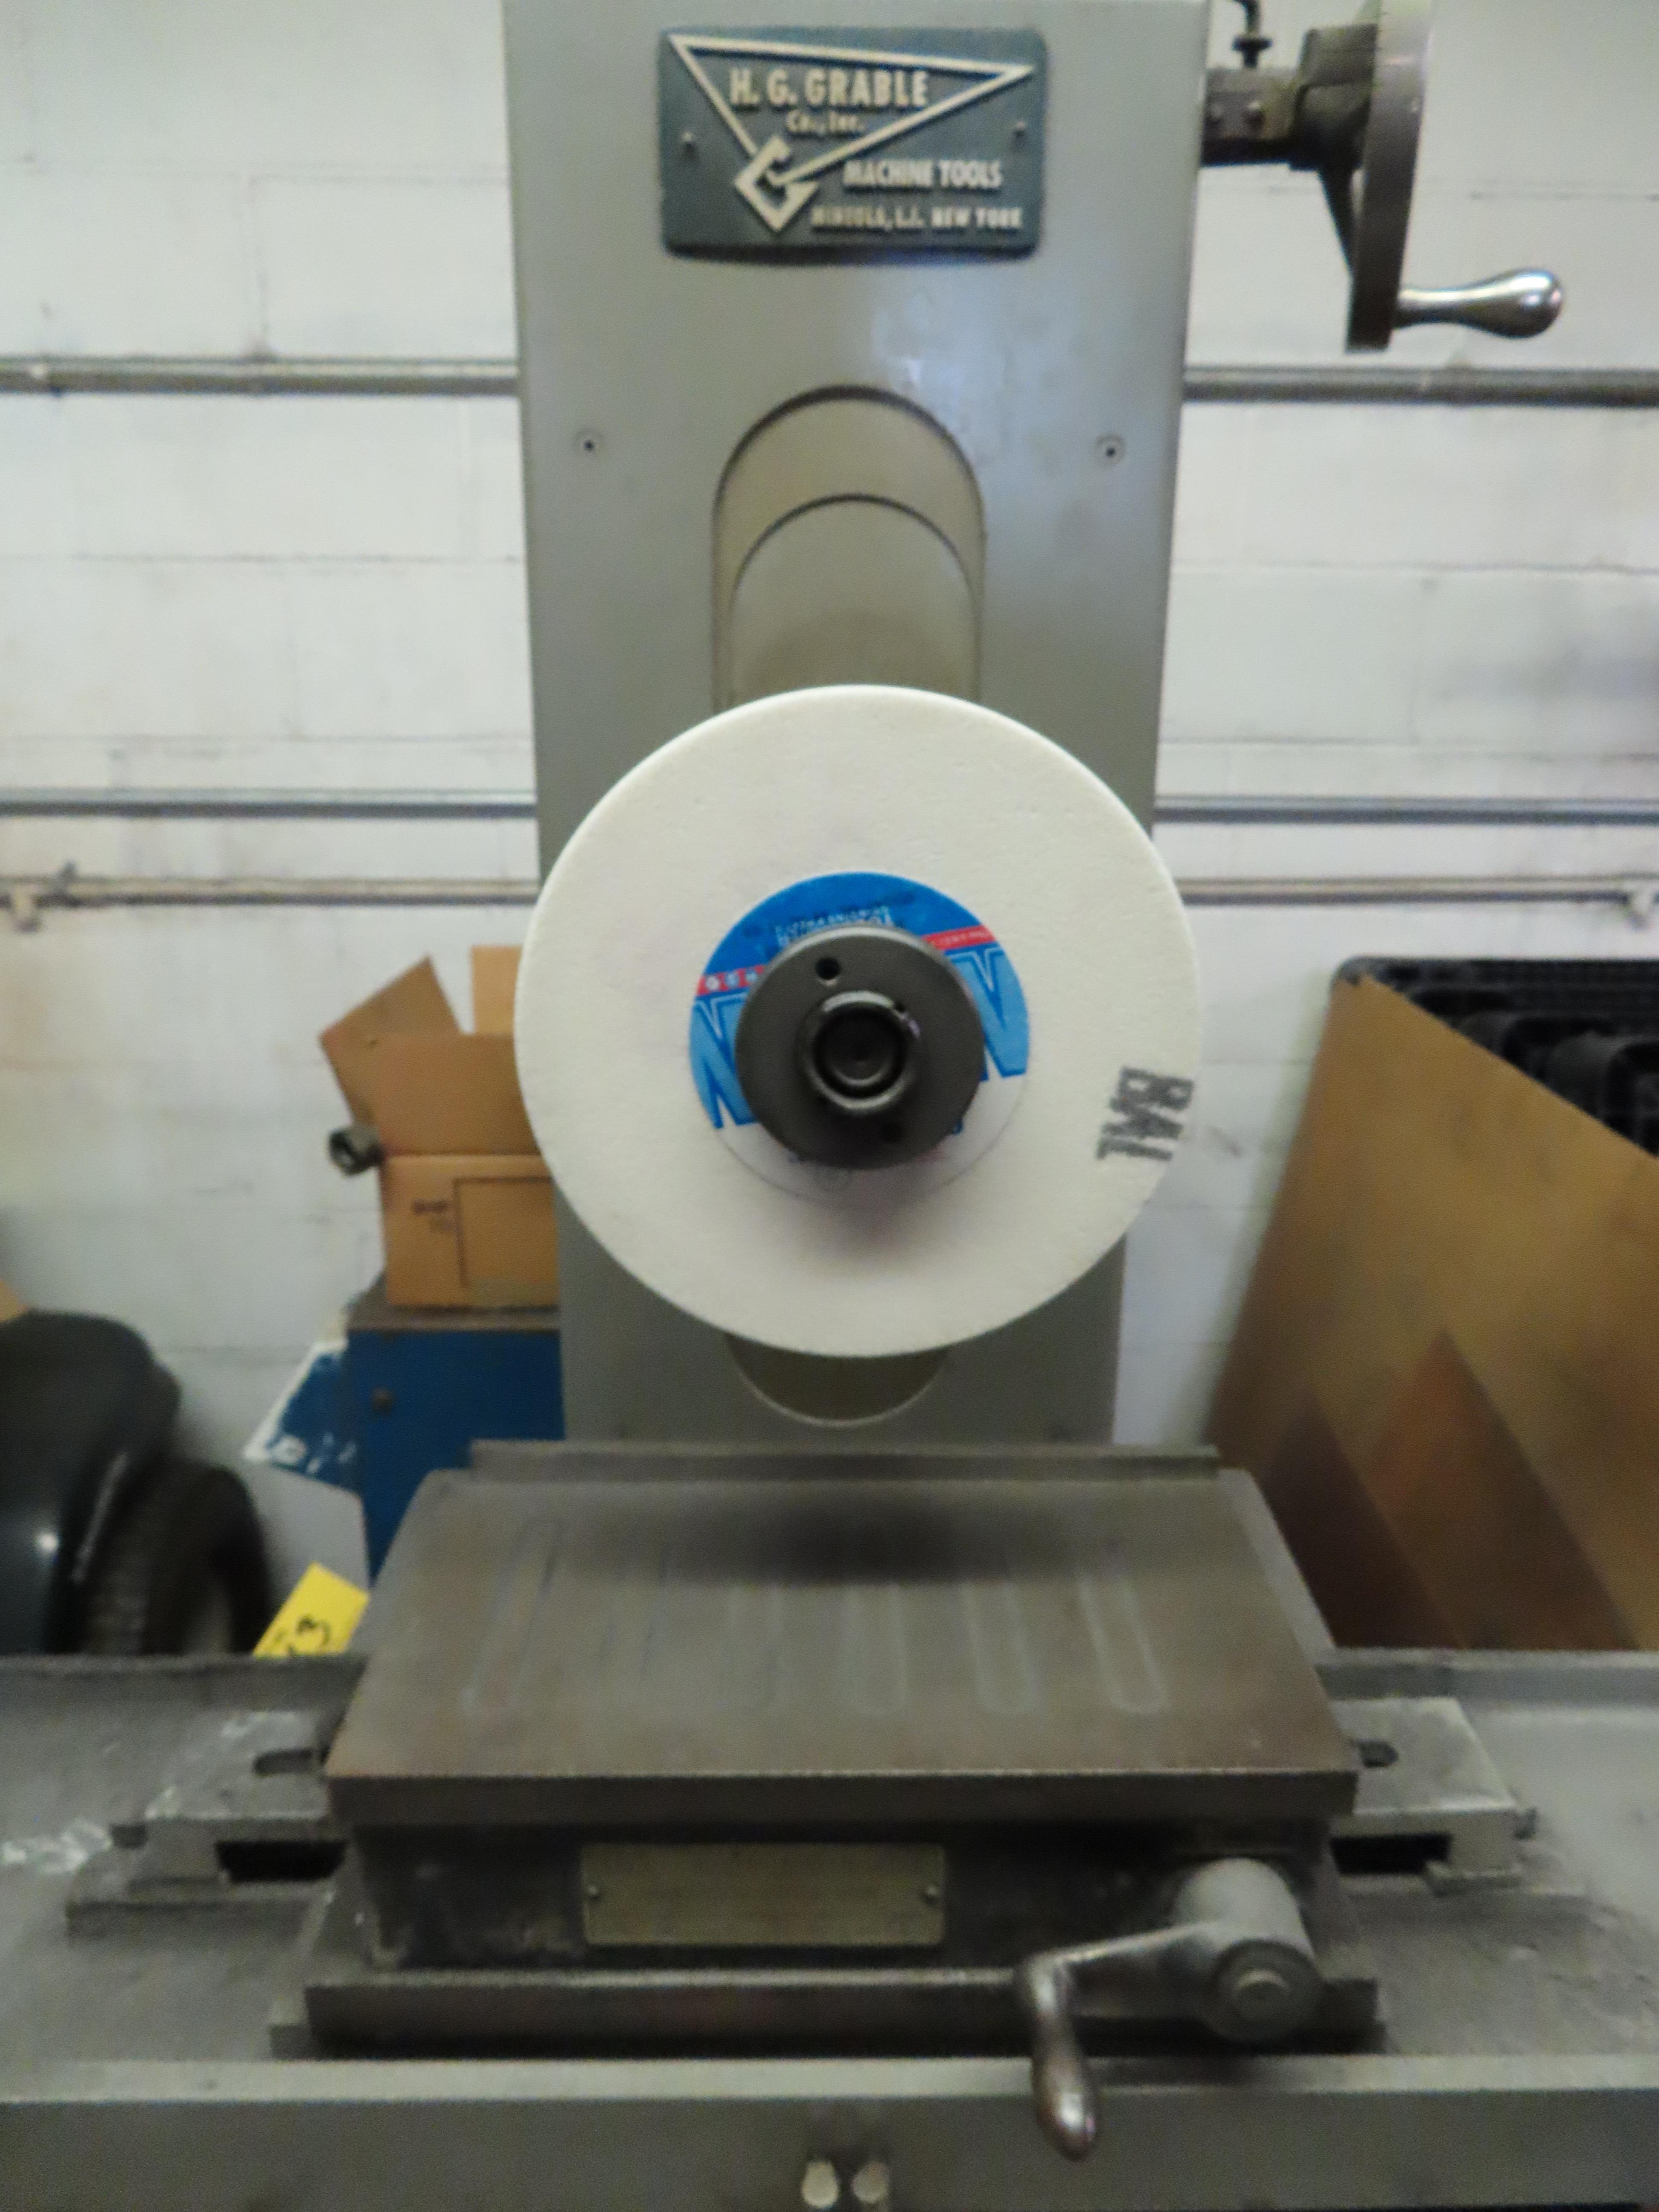 """SANFORD MFG. 5"""" X 10"""" HAND FEED SURFACE GRINDER, WITH 5"""" X 10"""" BROWN & SHARPE MAGNETIC CHUCK, 1/2HP, - Image 2 of 8"""